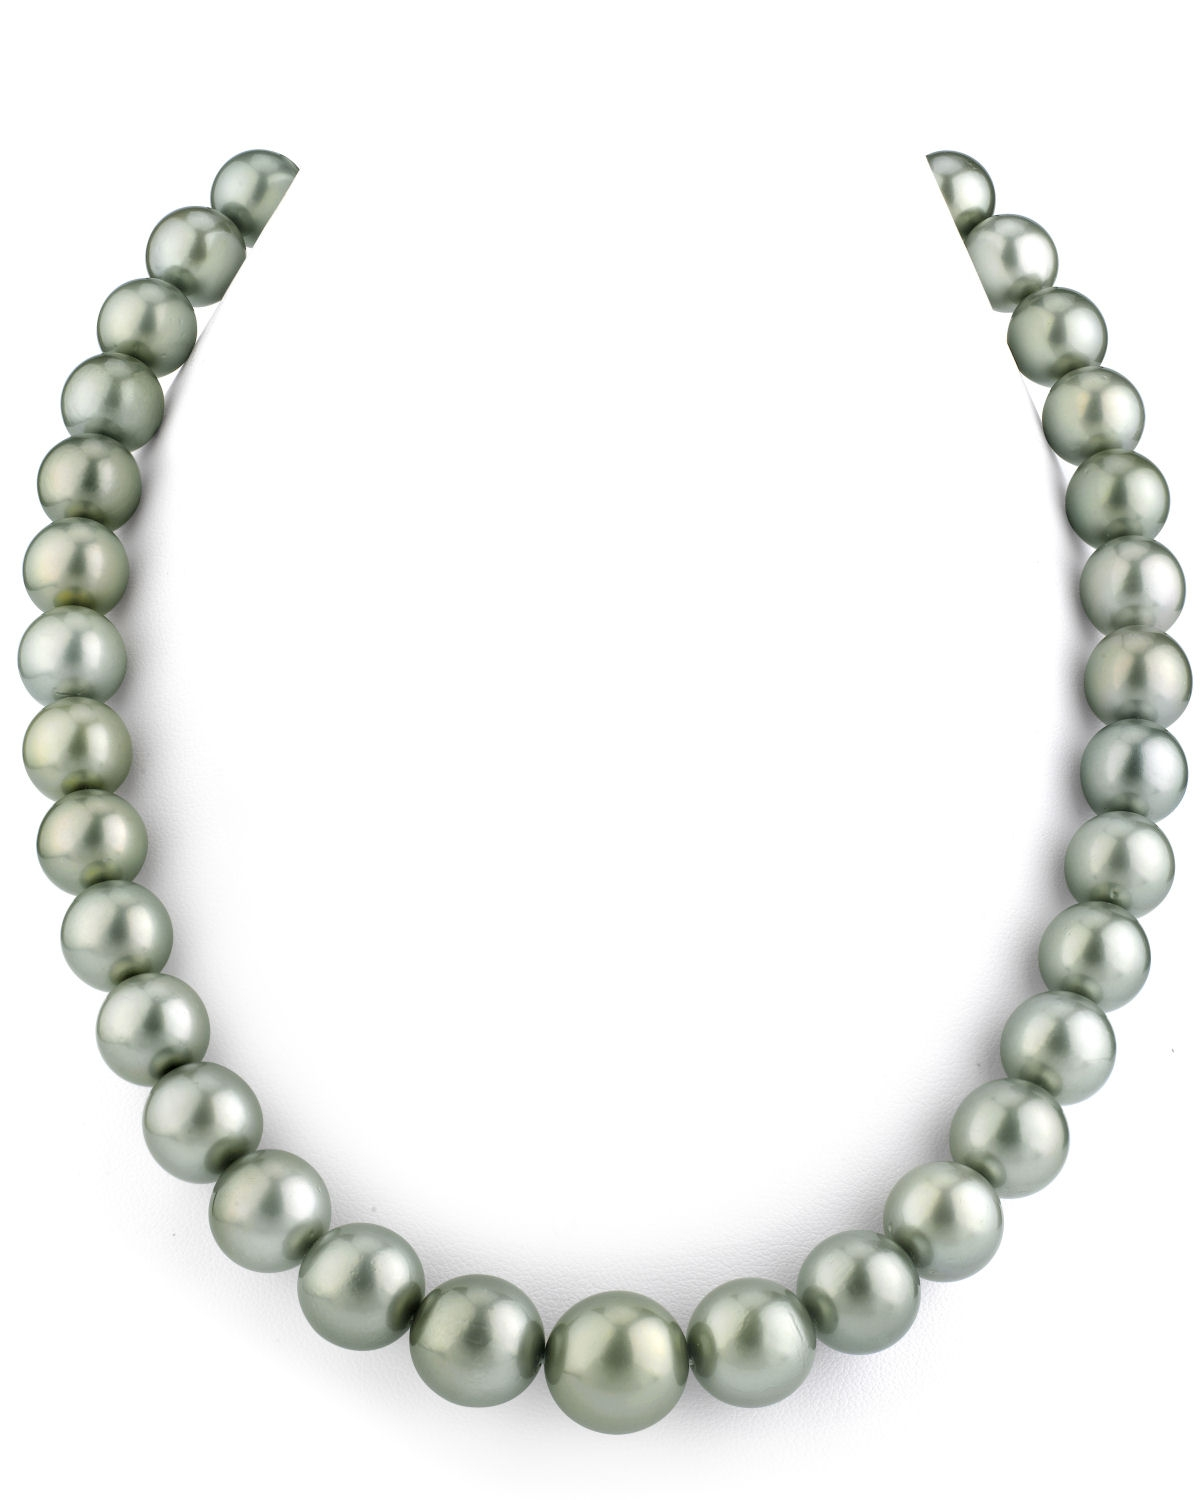 11-13mm Silver Tahitian South Sea Pearl Necklace